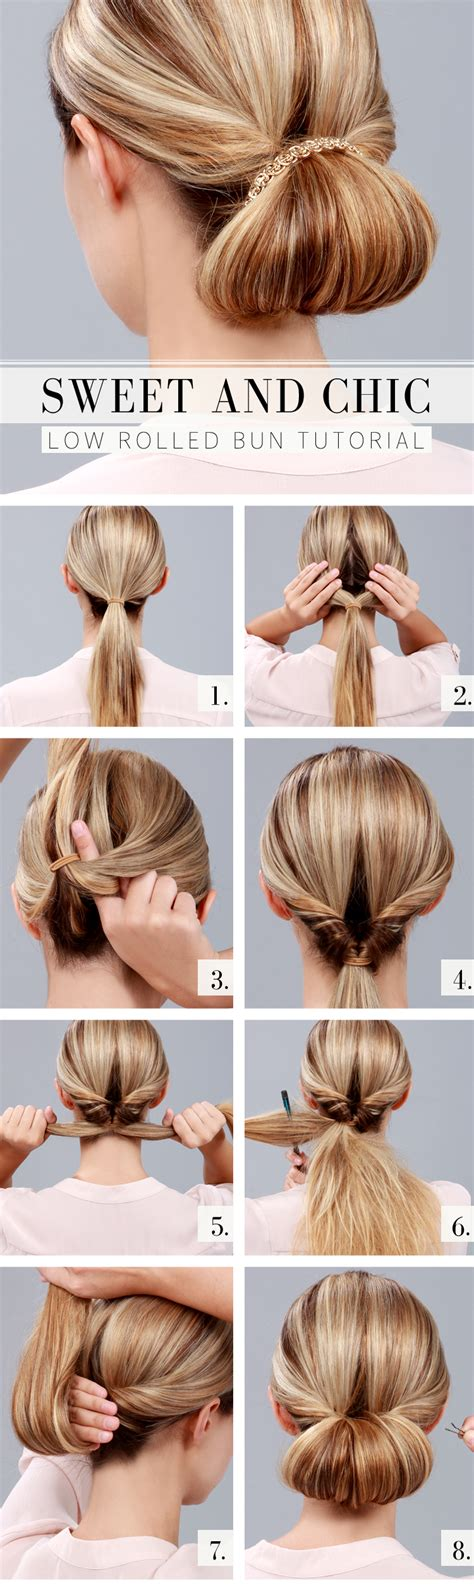 hairstyle tutorials top 10 hairstyle tutorials for summer pretty designs